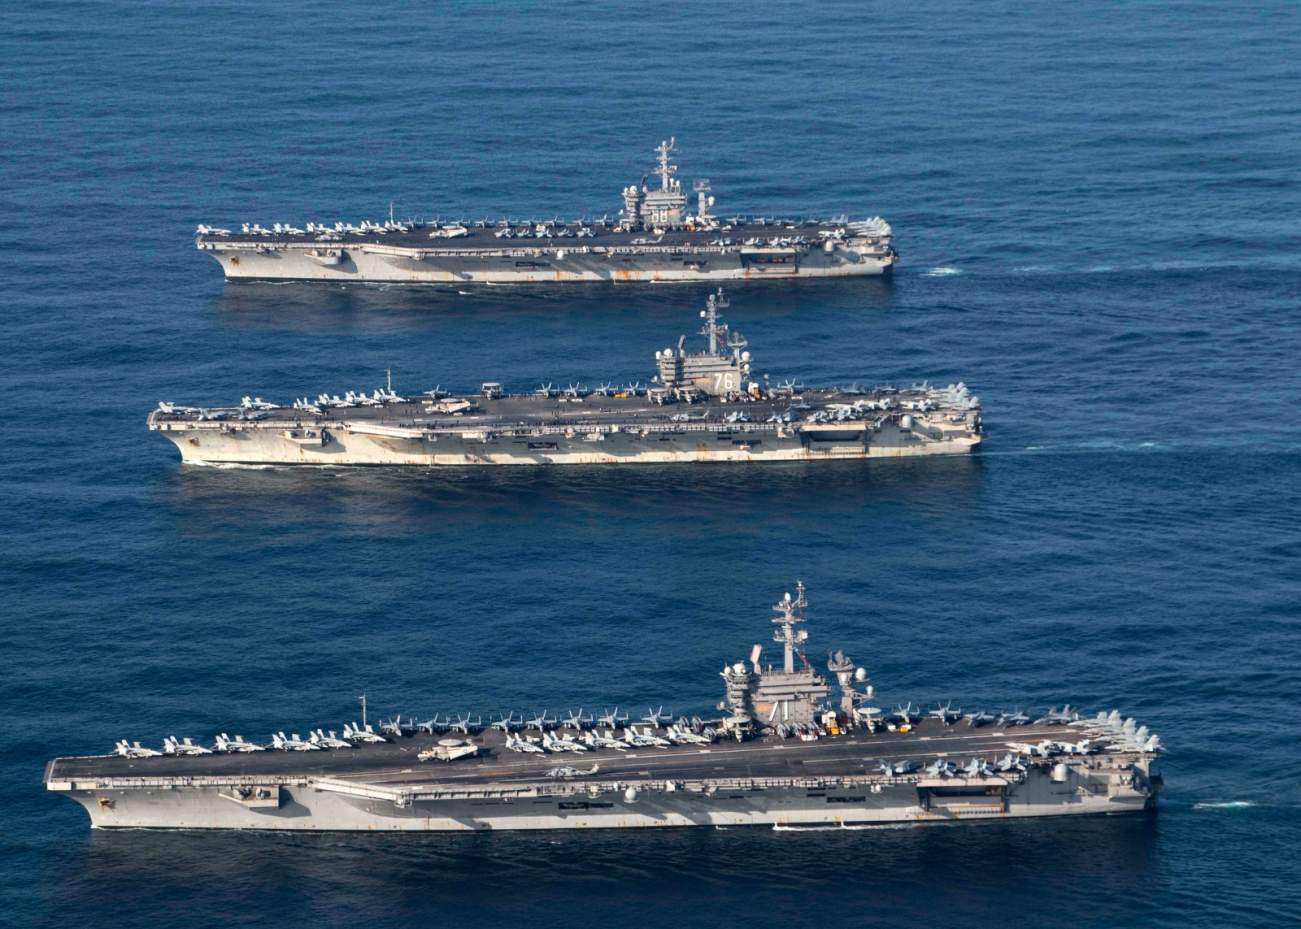 In 1982, America Sent Lots of Aircraft Carriers to Defense Israel